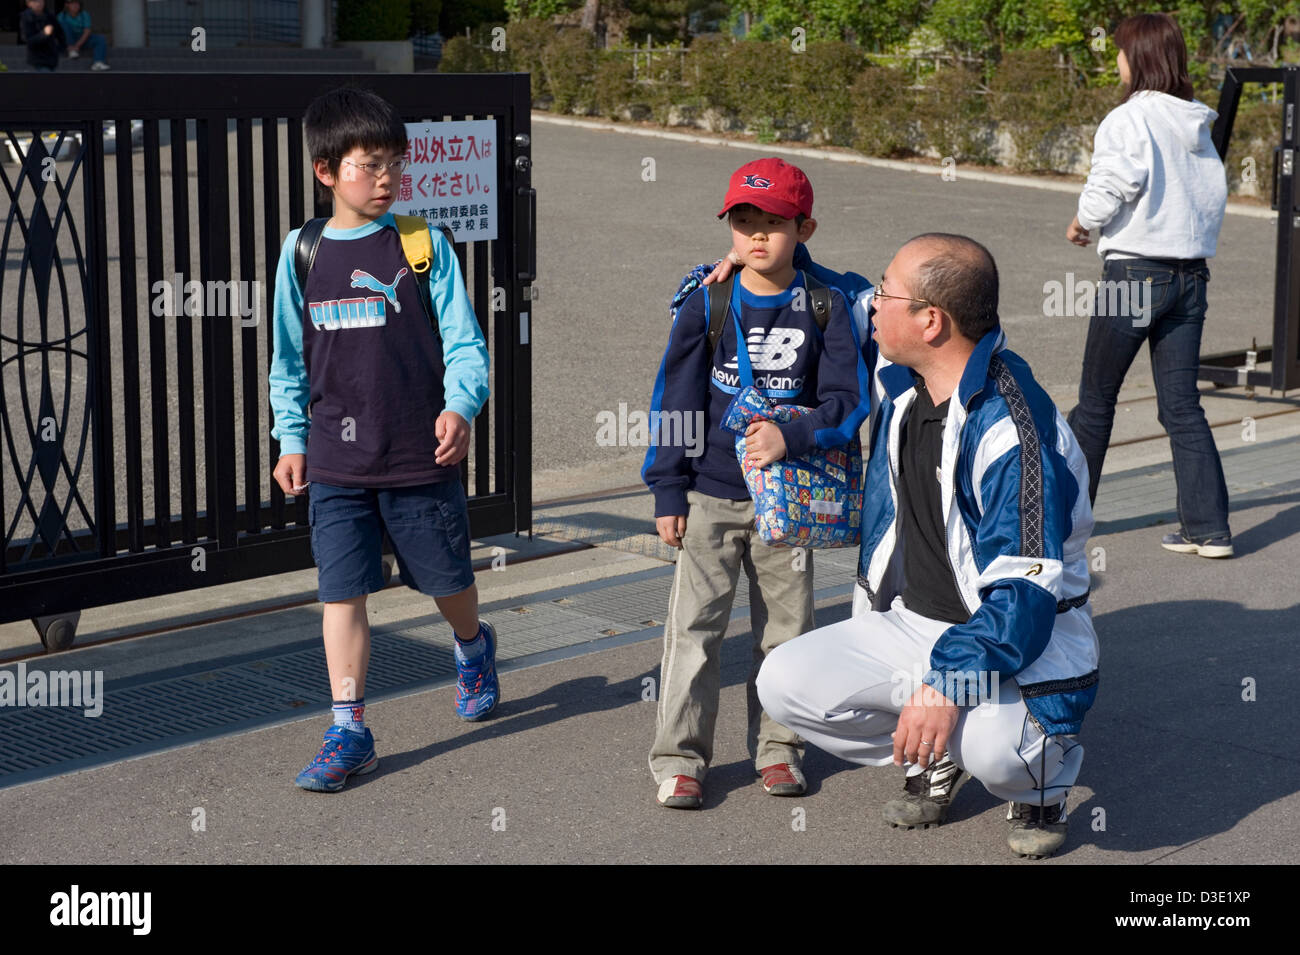 In late afternoon a father picks his son up at a middle school in Matsumoto City, Nagano, Japan. - Stock Image